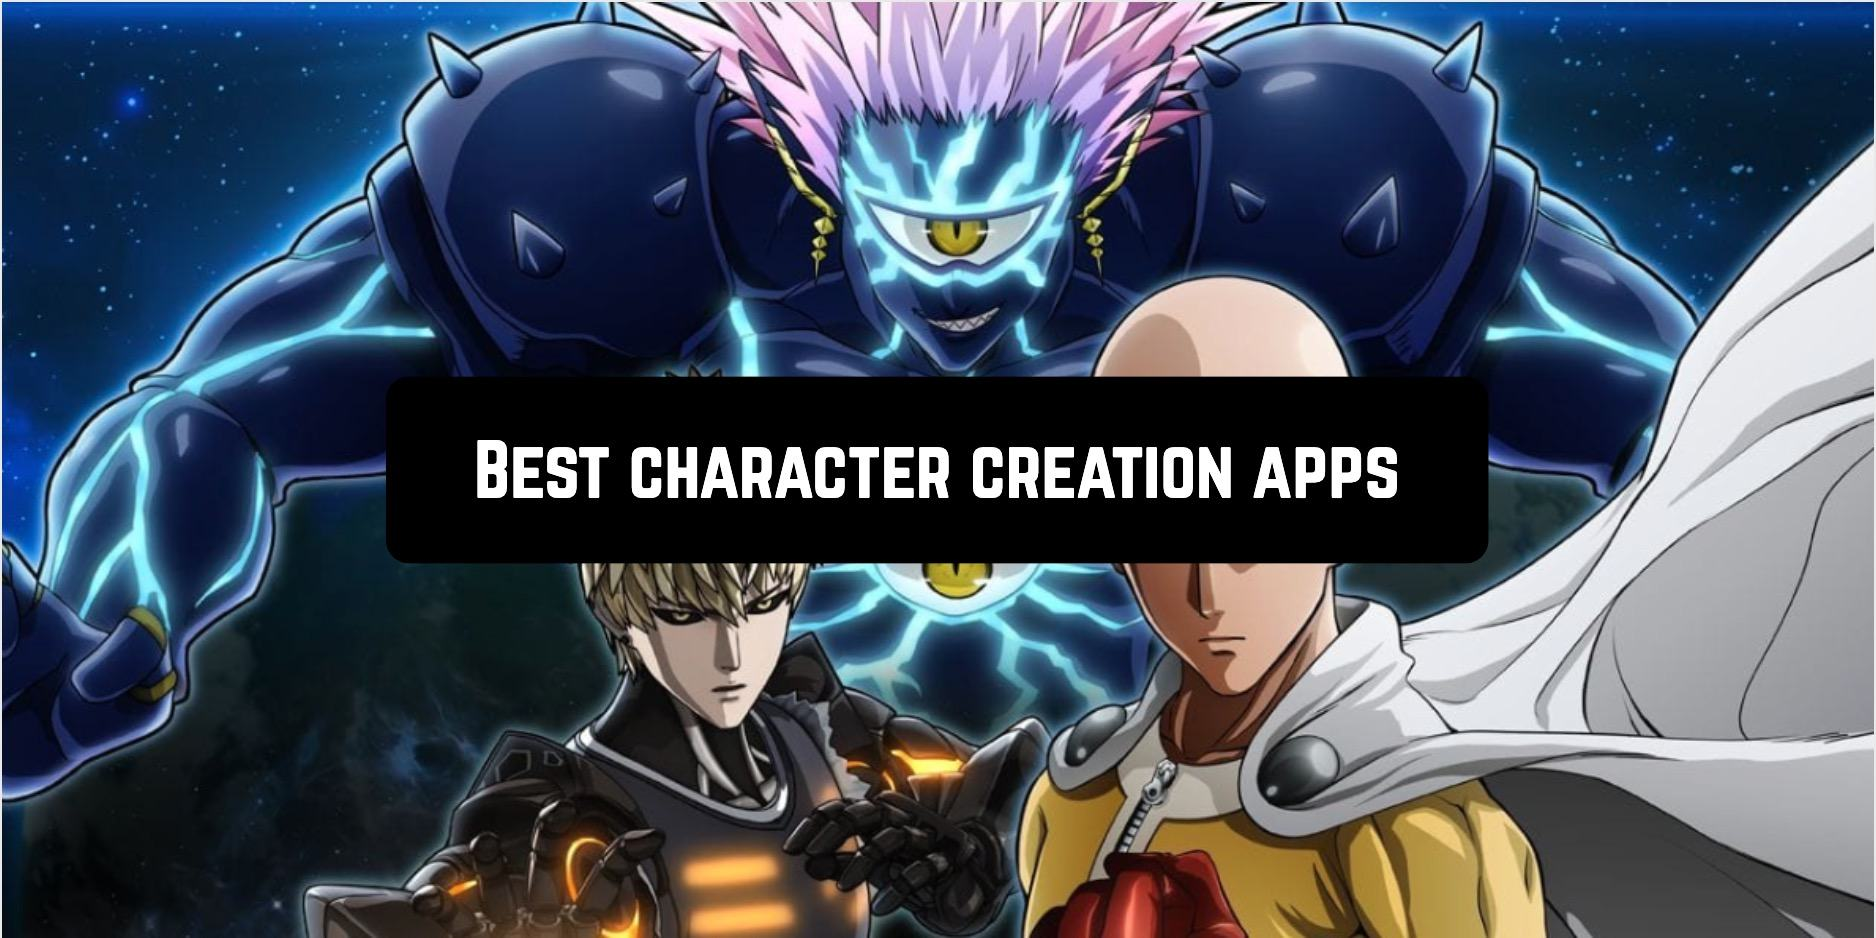 Best character creation apps